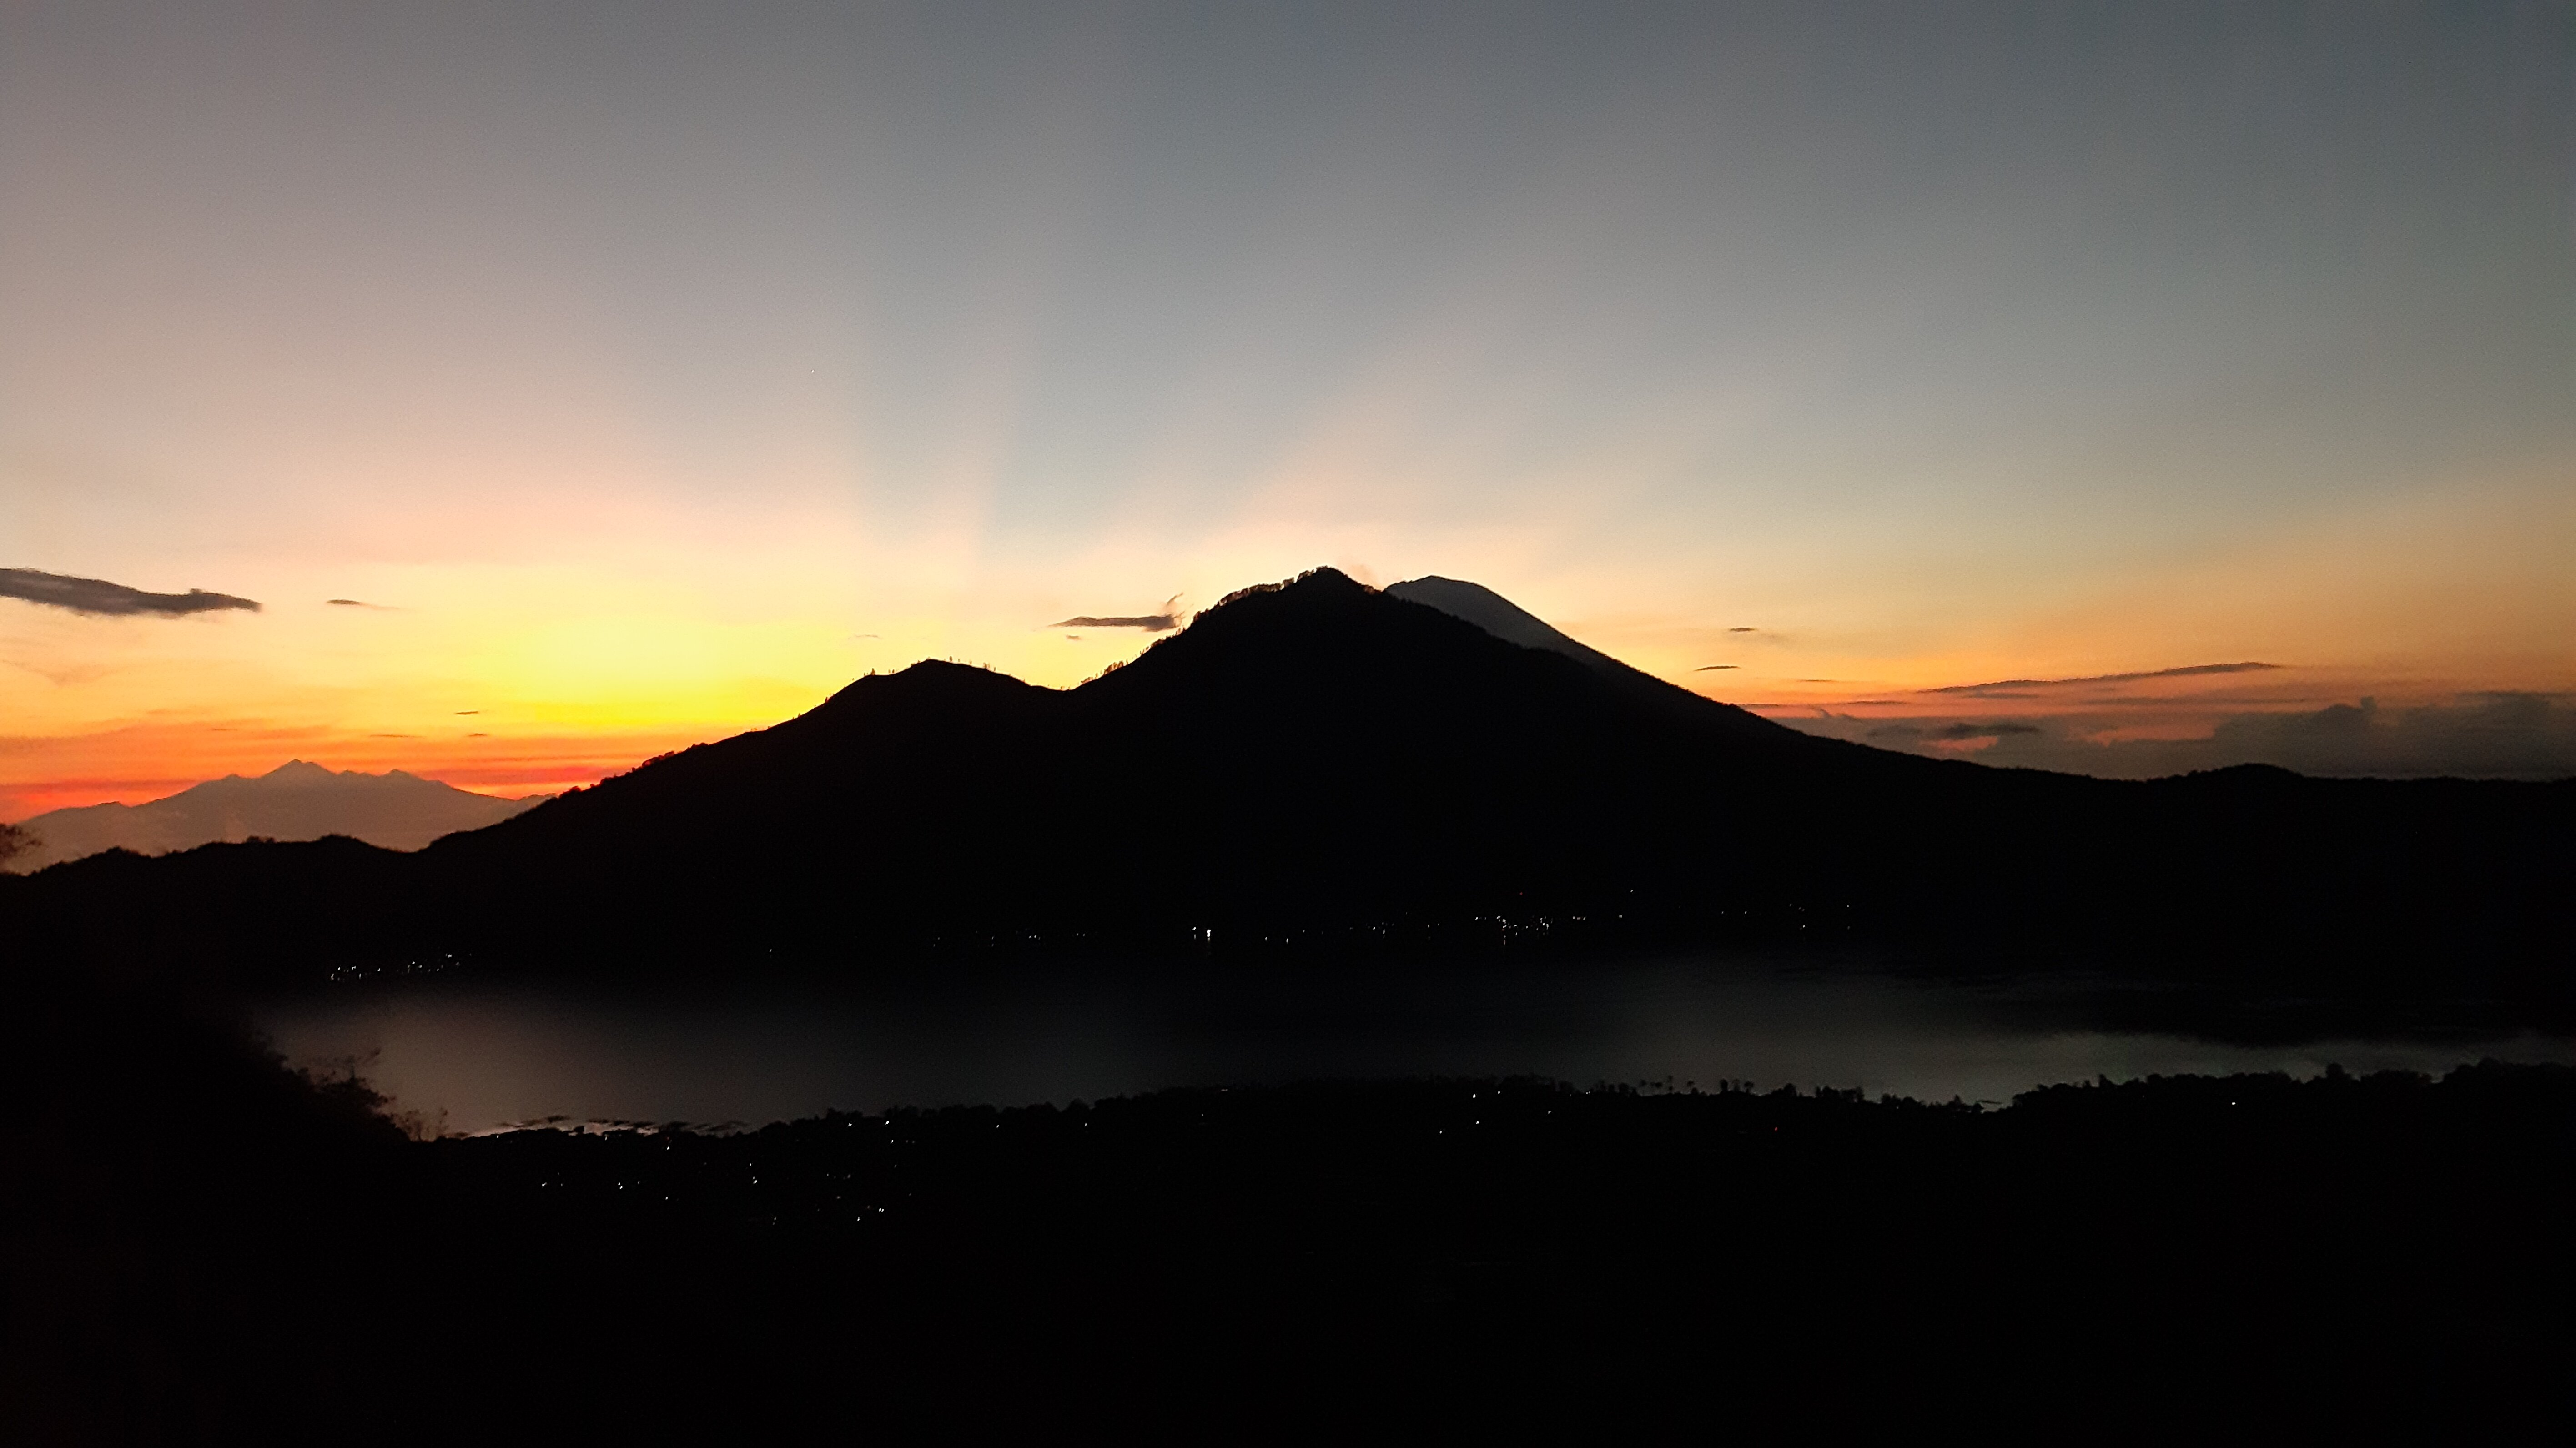 Sunrise over Mt Abang, viewed from Mt Batur.